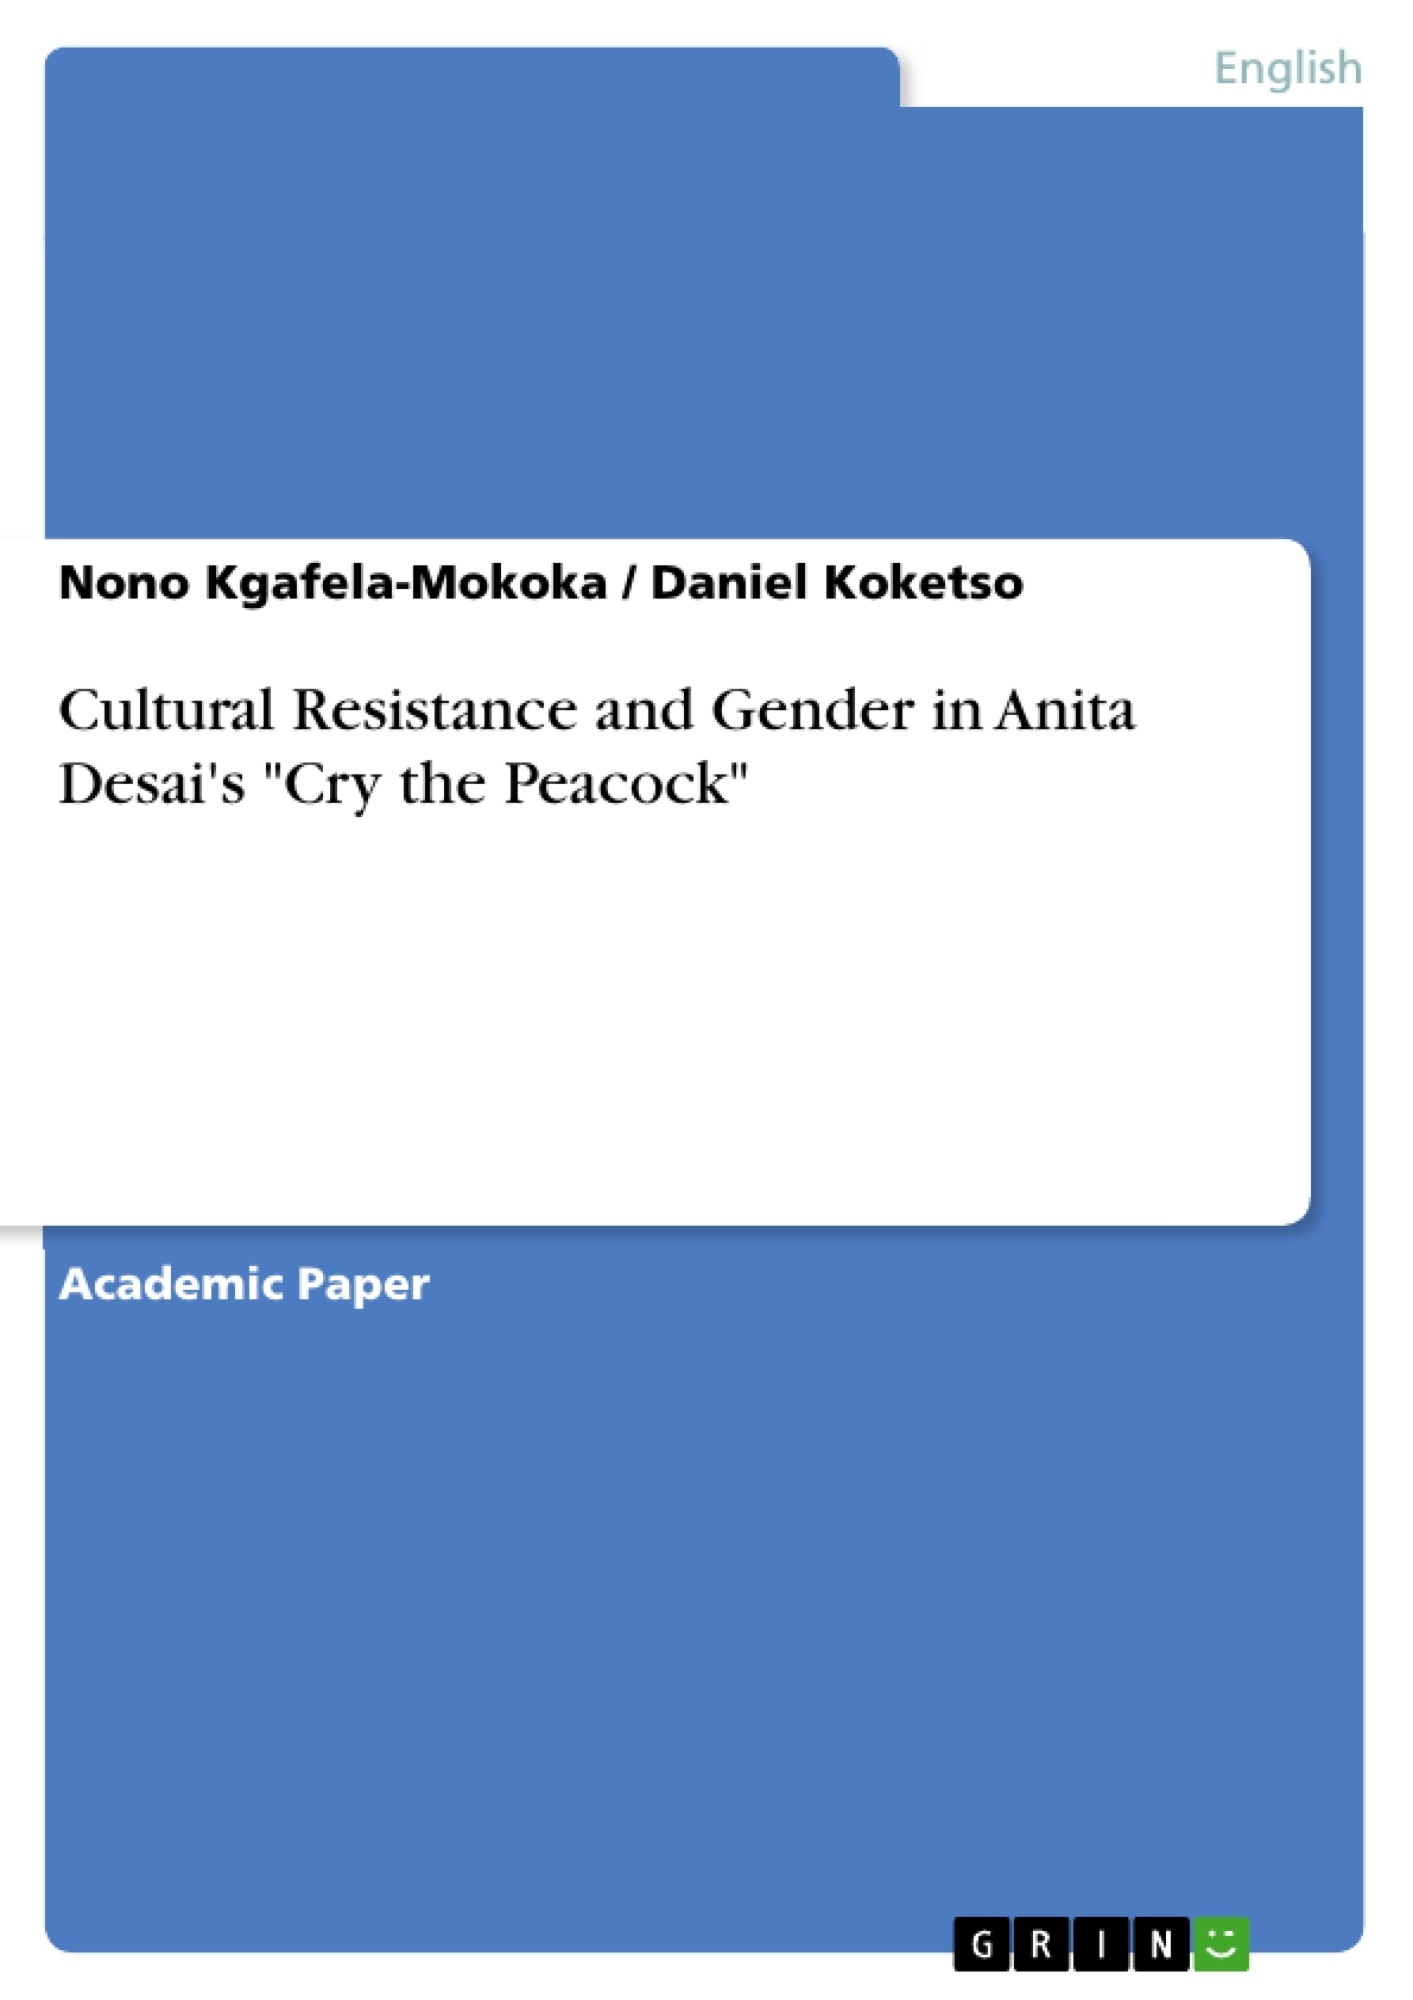 """Title: Cultural Resistance and Gender in Anita Desai's """"Cry the Peacock"""""""